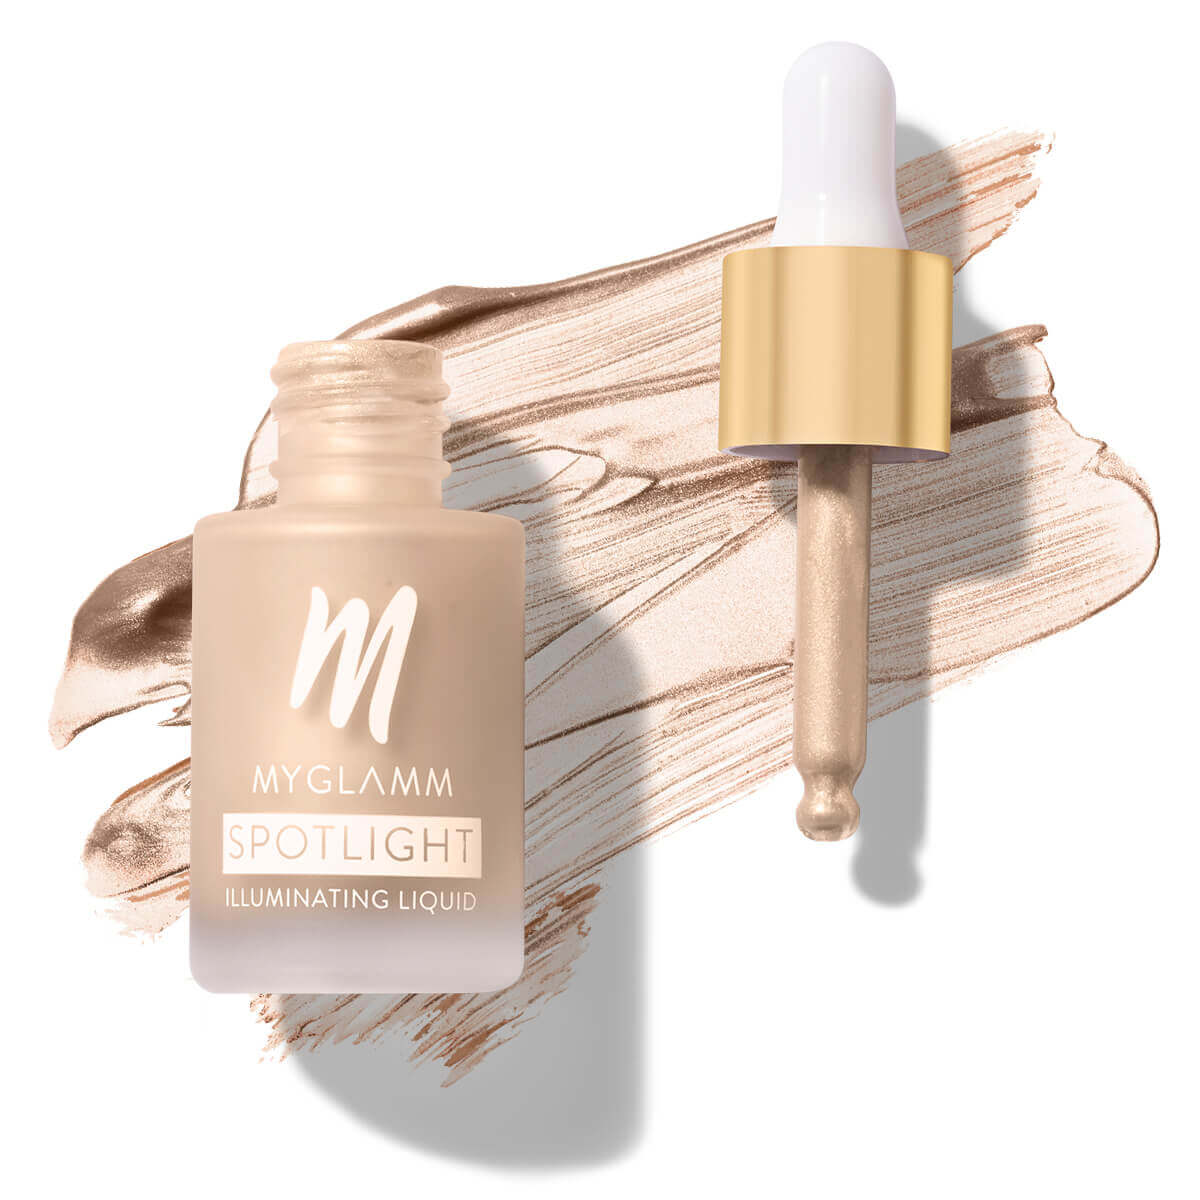 Spotlight - Illuminating Liquid Highlighter